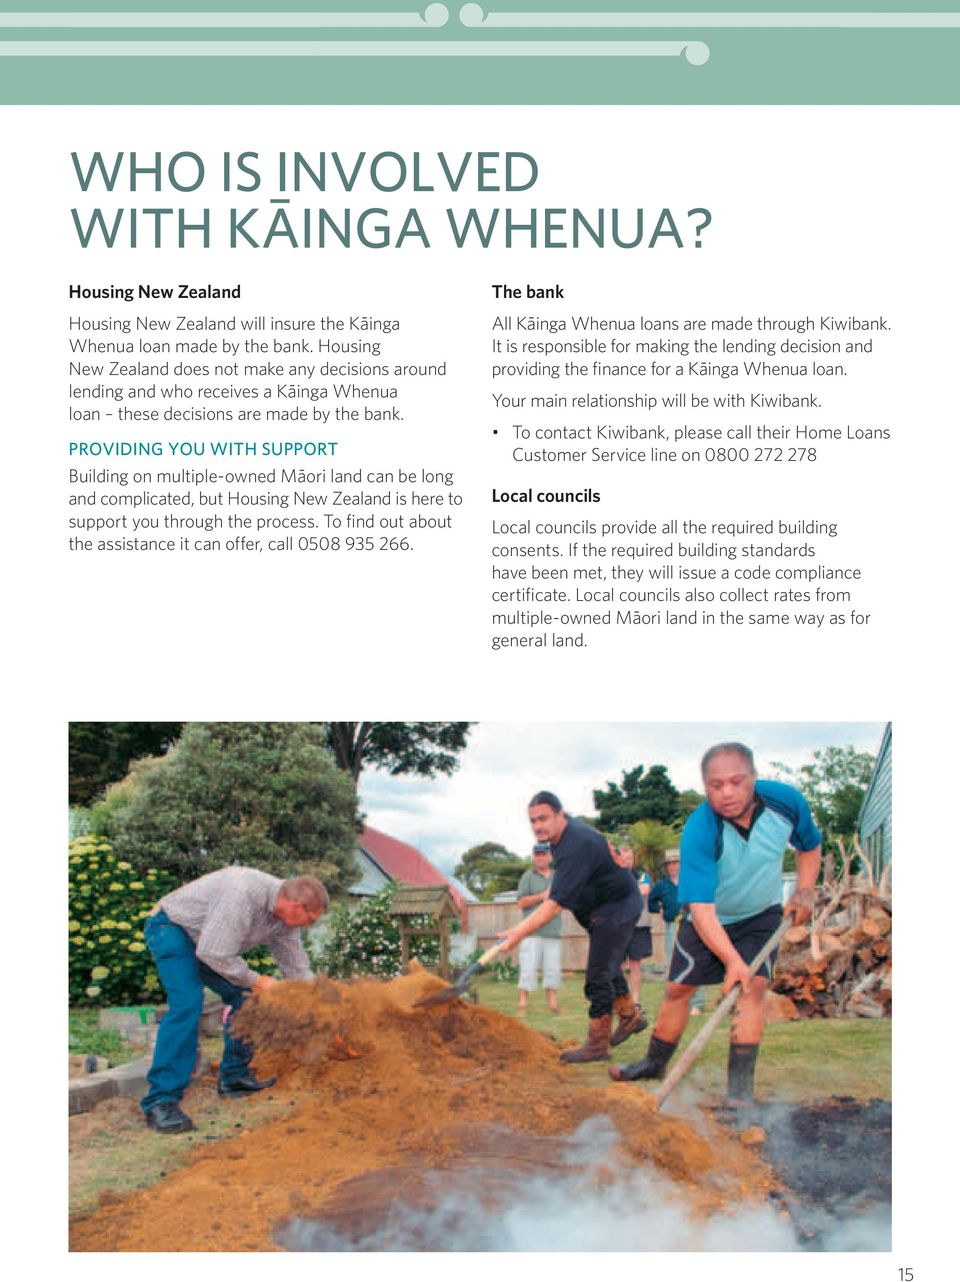 Providing you with support Building on multiple-owned Māori land can be long and complicated, but Housing New Zealand is here to support you through the process.